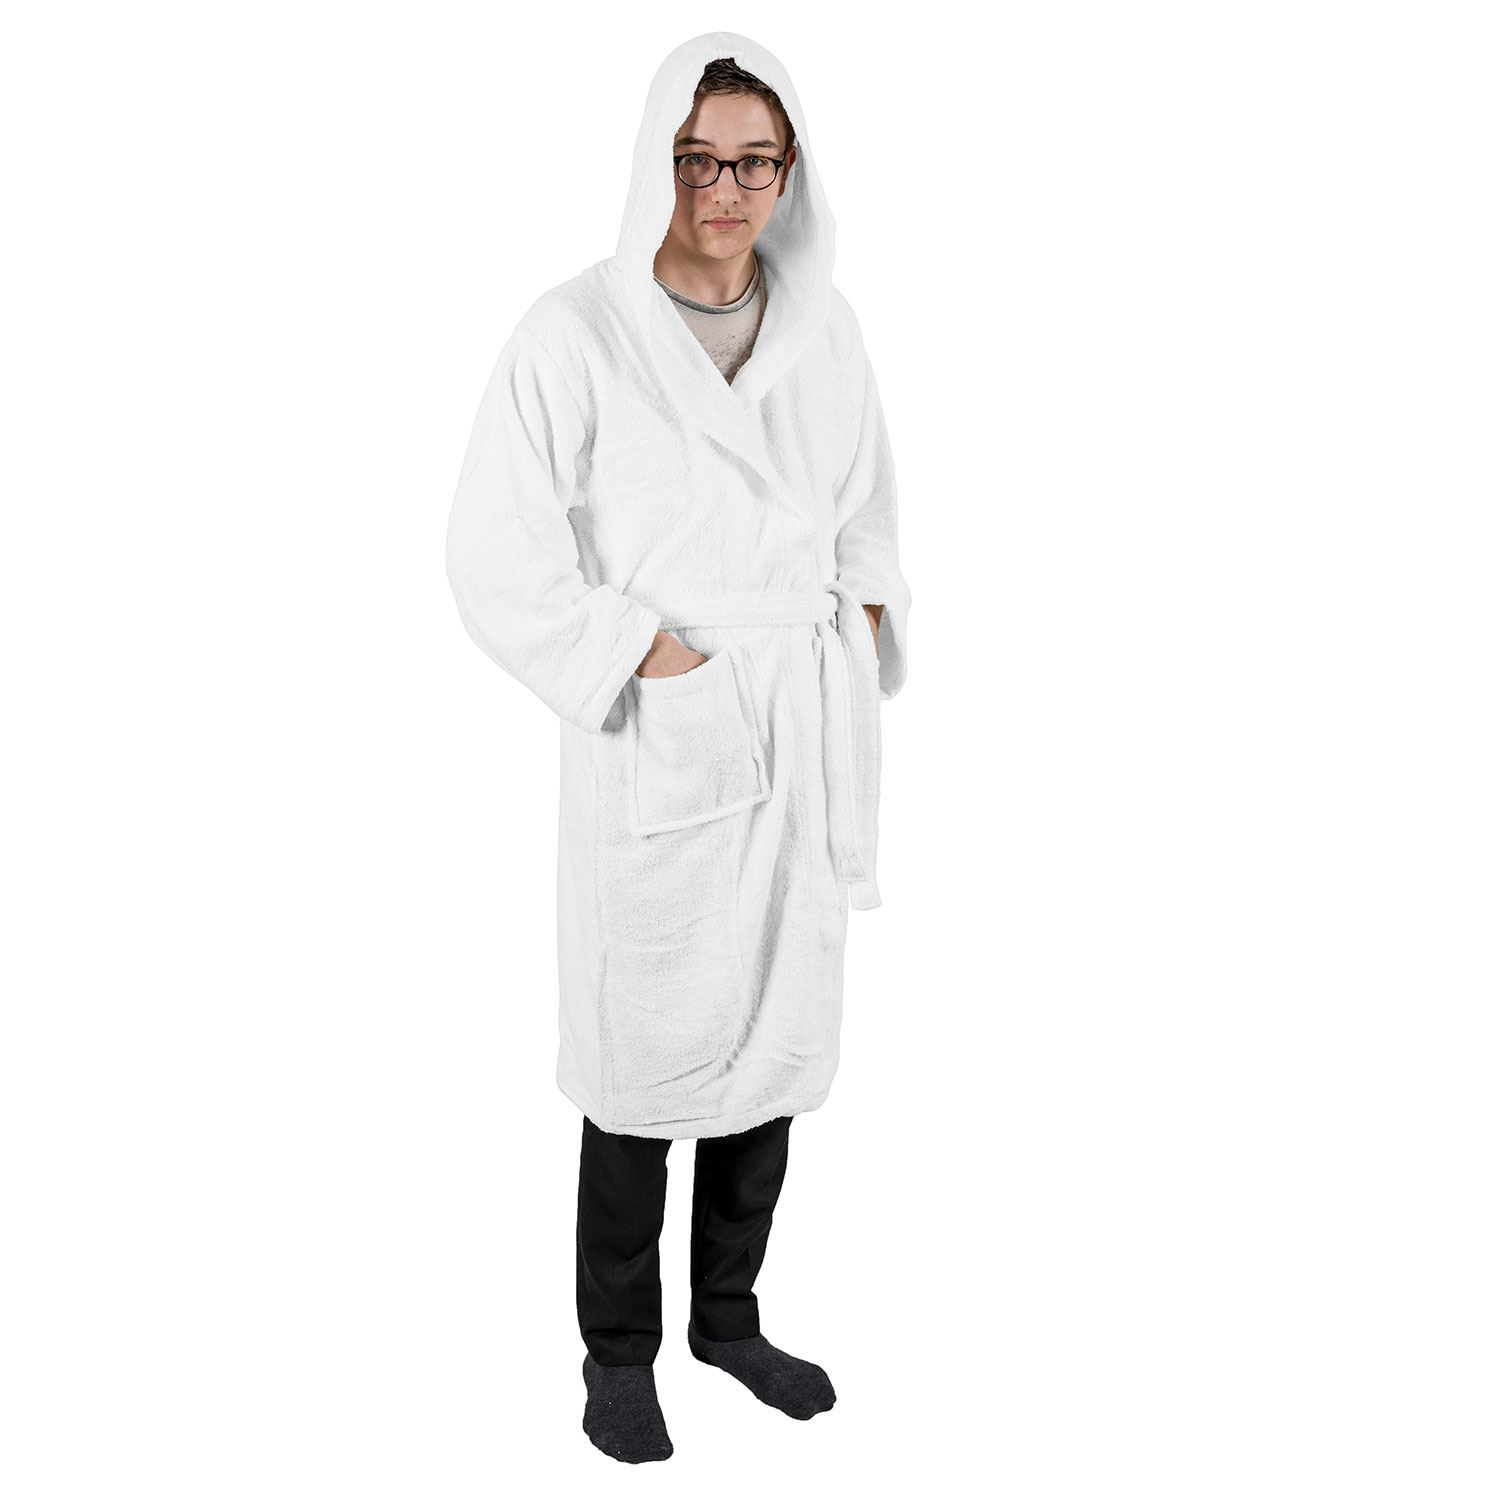 ... Cotton Unisex Bathrobe Terry Towelling Soft Dressing Gown White Xx-large.  About this product. Picture 1 of 7  Picture 2 of 7  Picture 3 of 7  Picture  4 ... eb07d7801